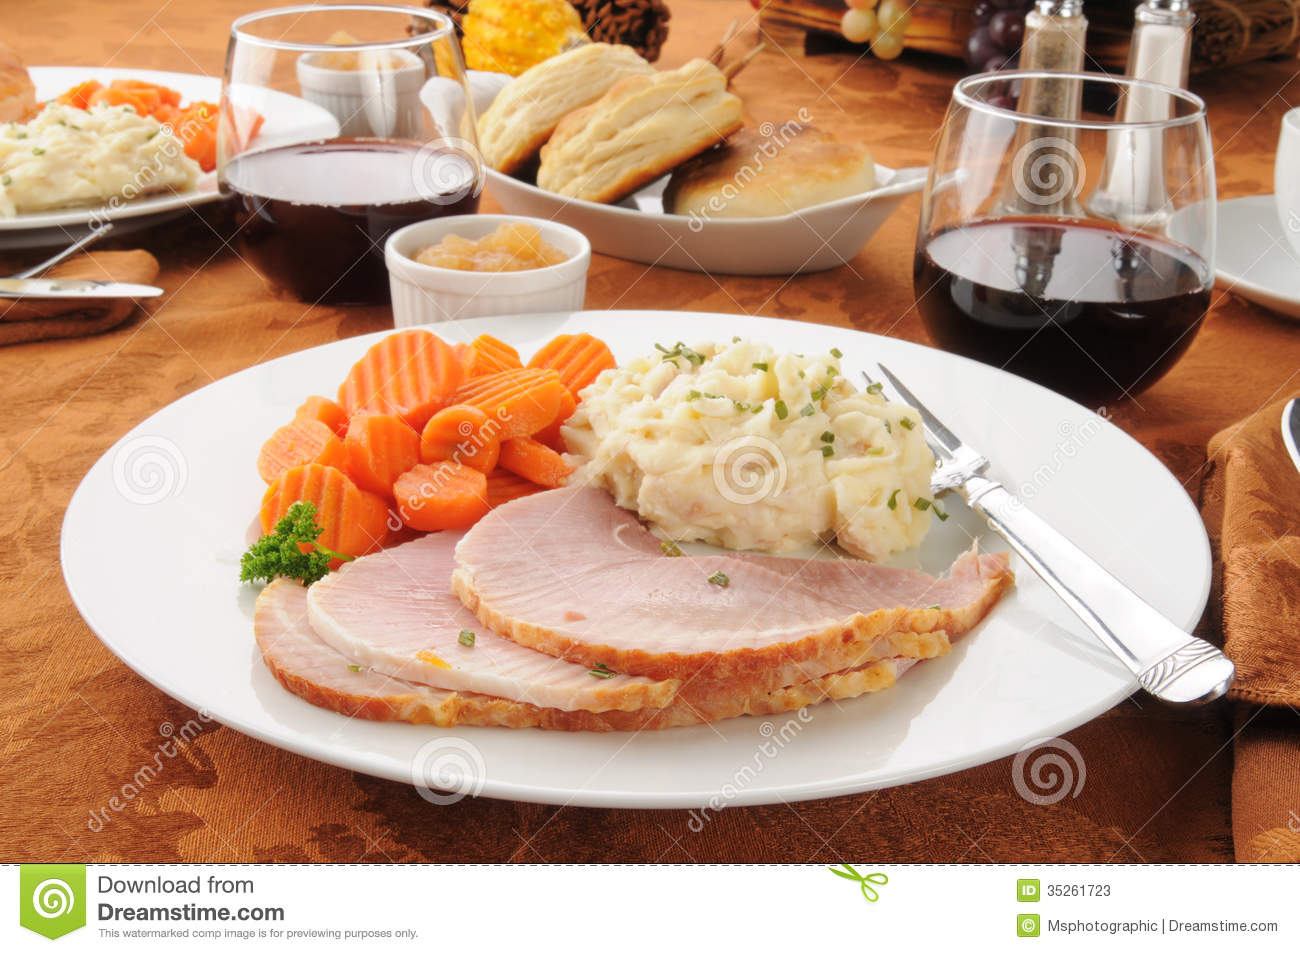 Baked Ham With Mashed Potatoes And Carrots